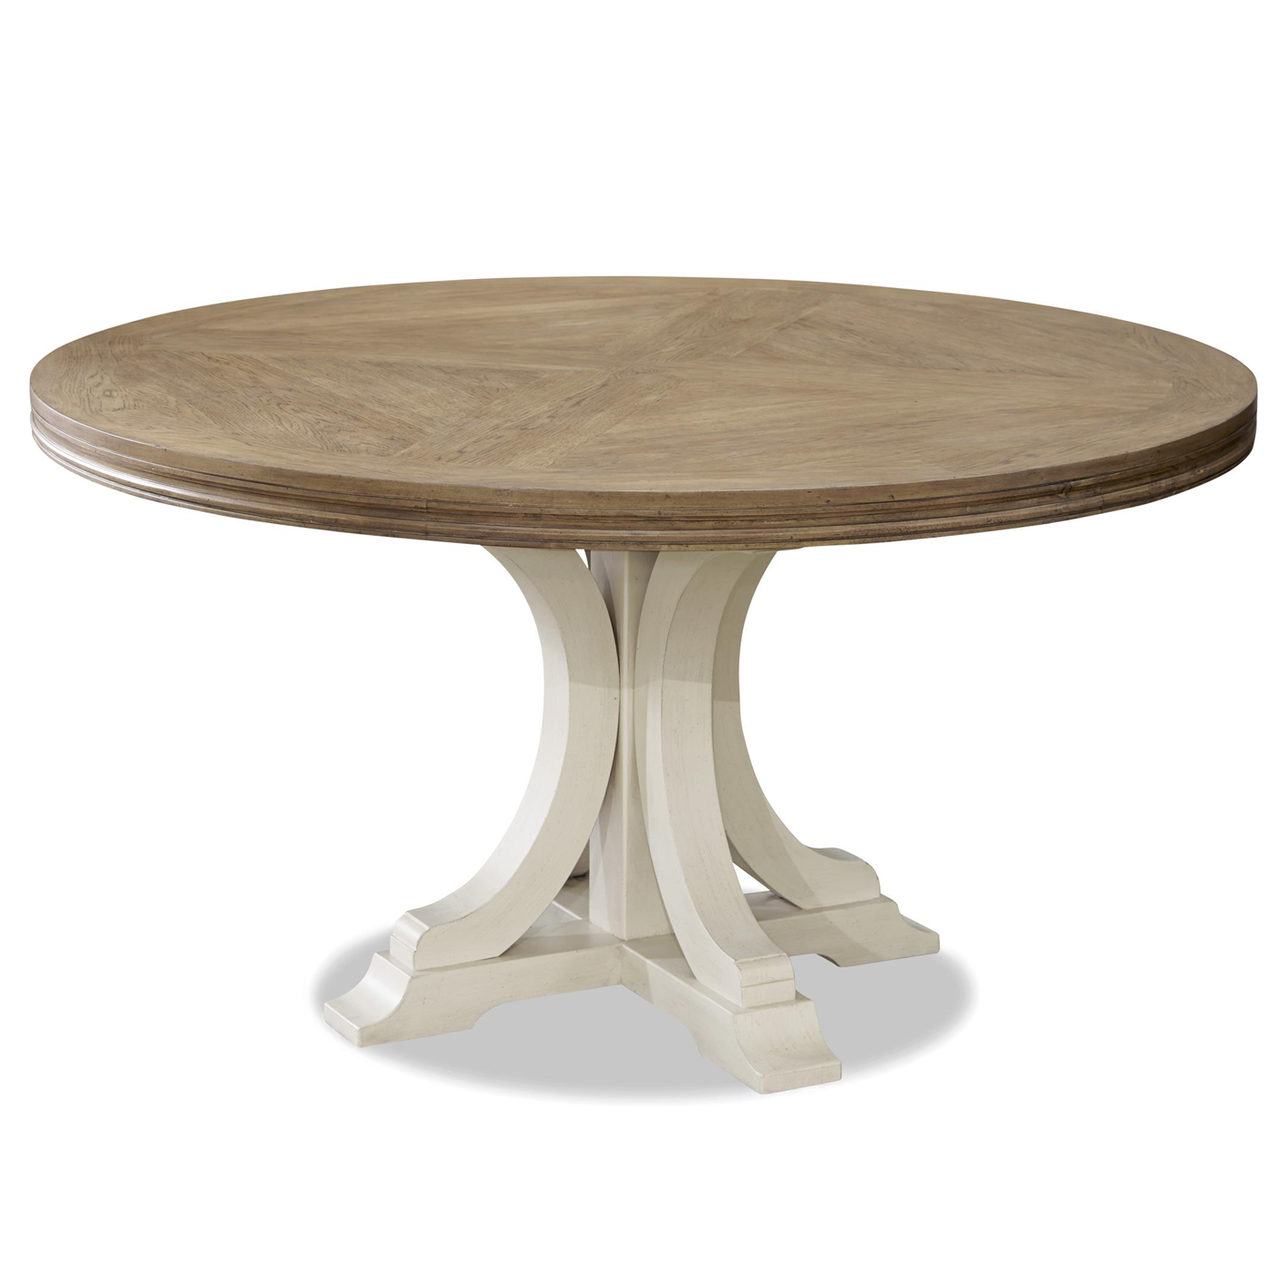 French modern white wood pedestal round dining table 58 for Pedestal dining table